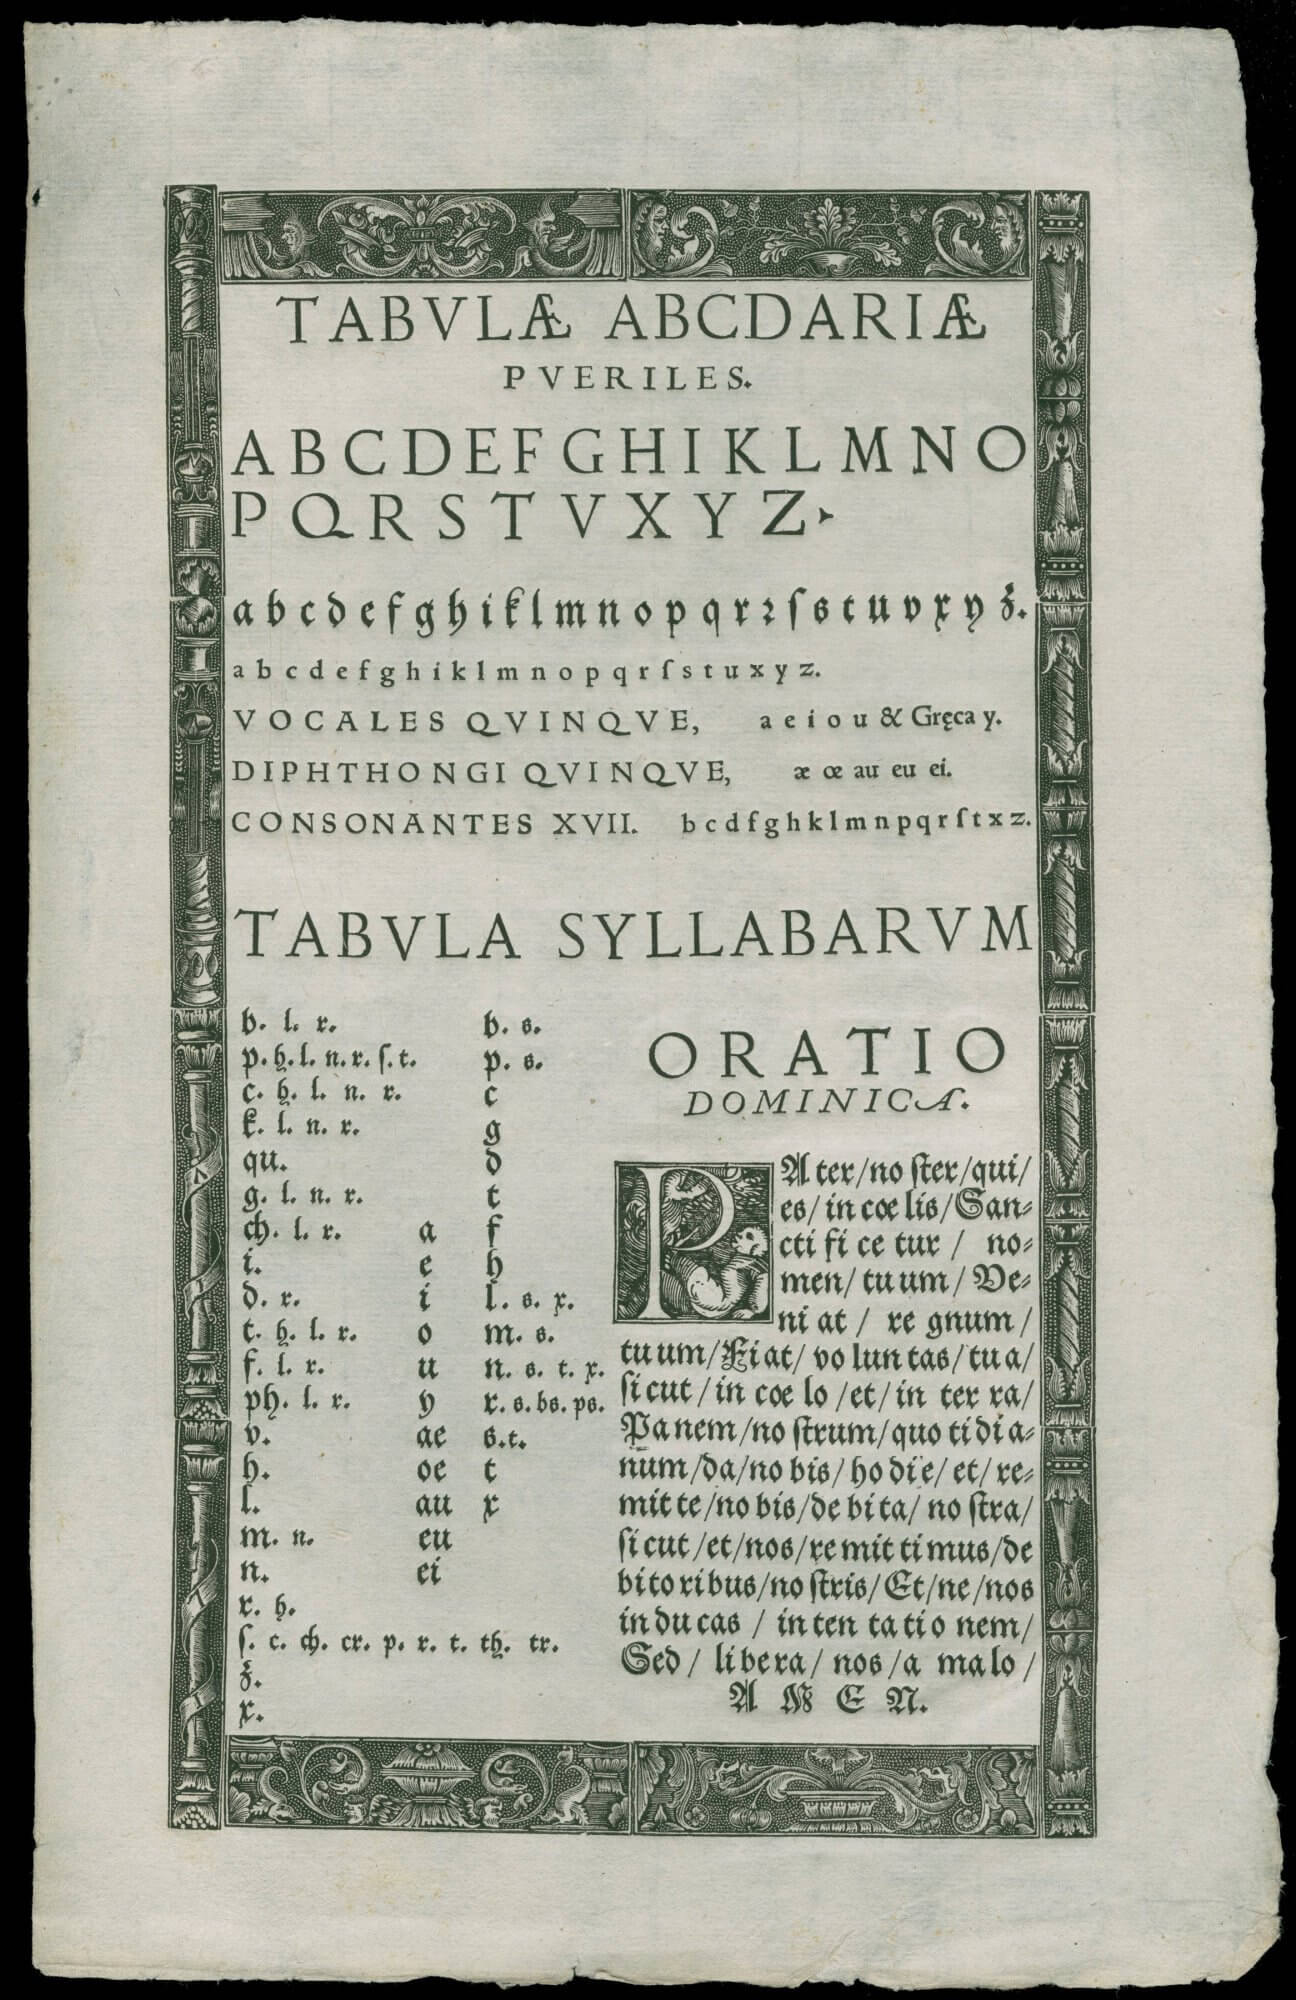 Children were often taught to read by printed examples of the alphabet and the Lord's Prayer. This sheet is one of the earliest surviving lessons (probably because, as its appearance suggests, it was never used). Although there is no imprint statement on the sheet, the blocks used in the border were also used by Valentin Bapst in the late 1540s, suggesting that he is this work's printer as well.